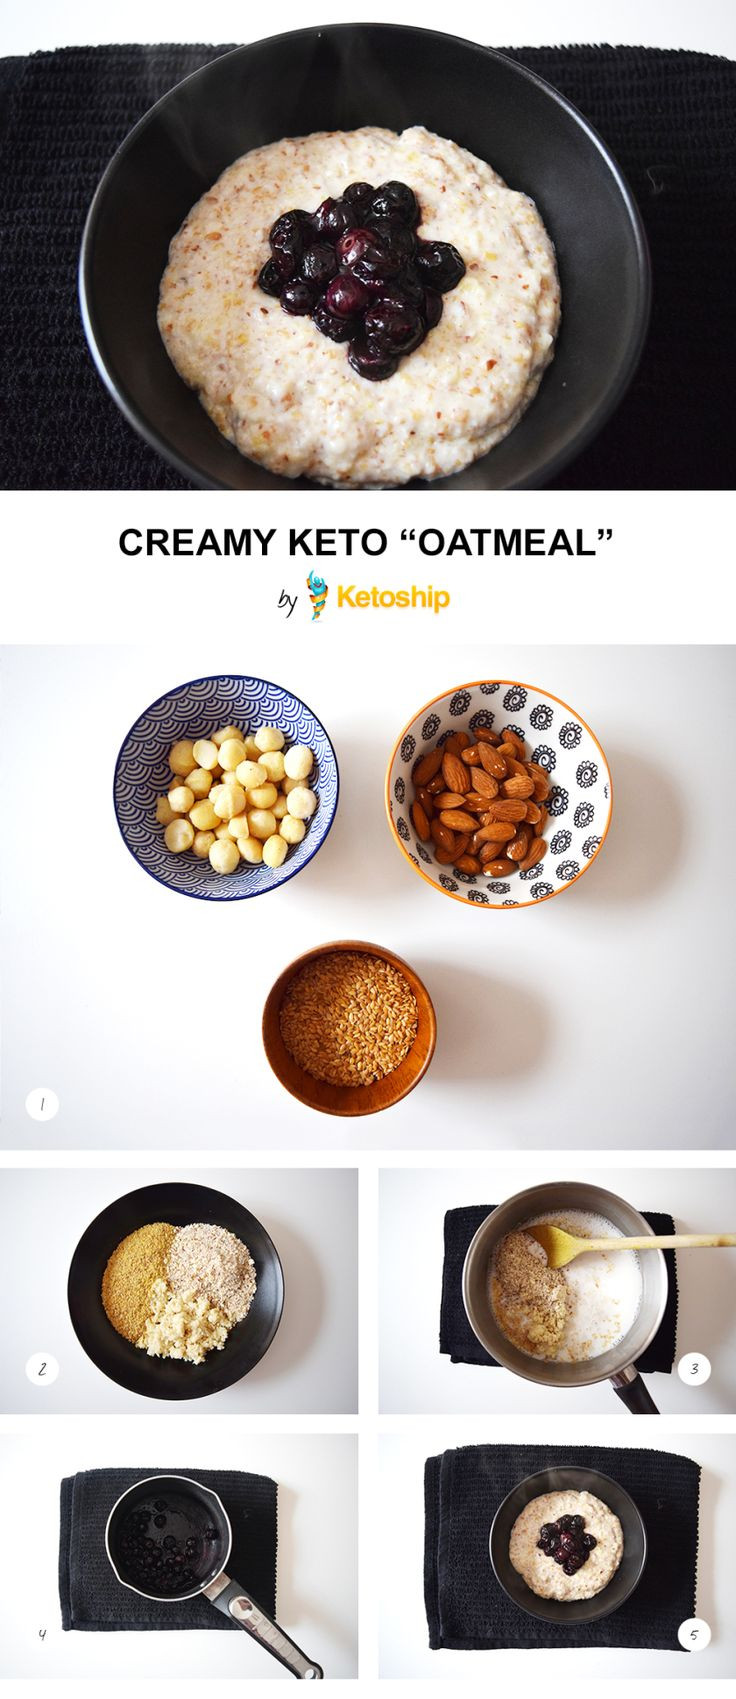 Oatmeal And Keto Diet  Creamy Keto Oatmeal recipe Ketoship